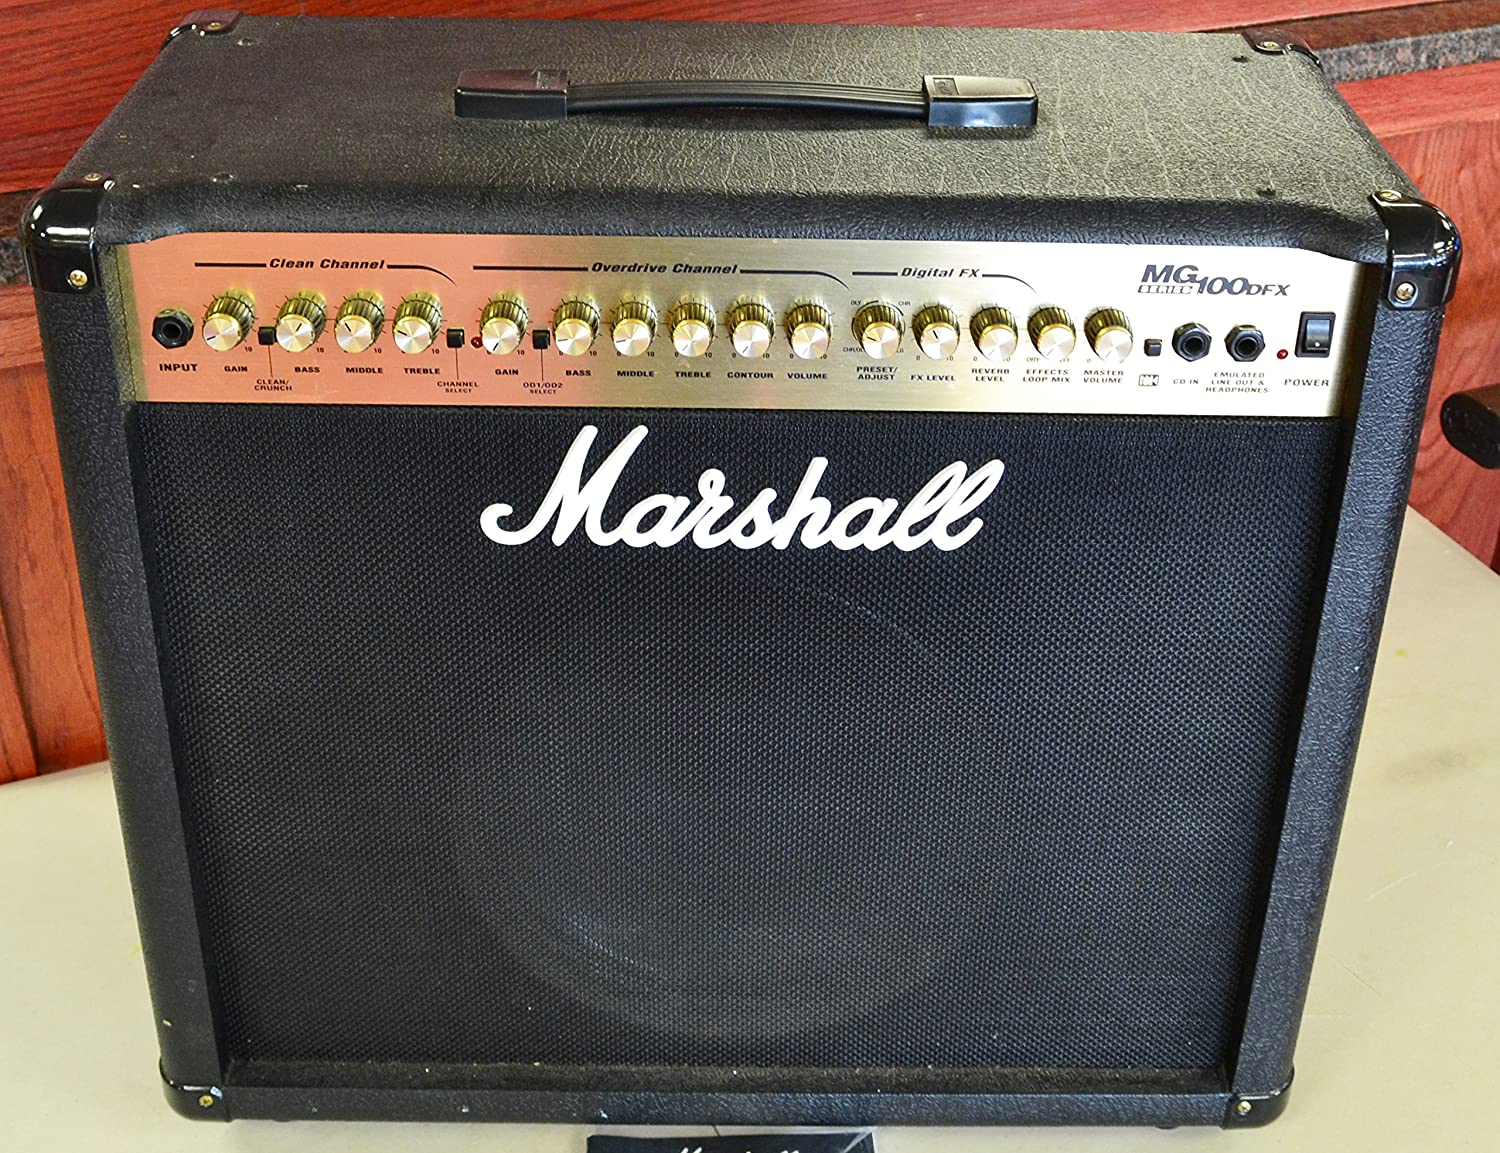 Amazon.com: Marshall MG100DFX Combo Amplifier Electric Guitar Combo Amp: Musical Instruments